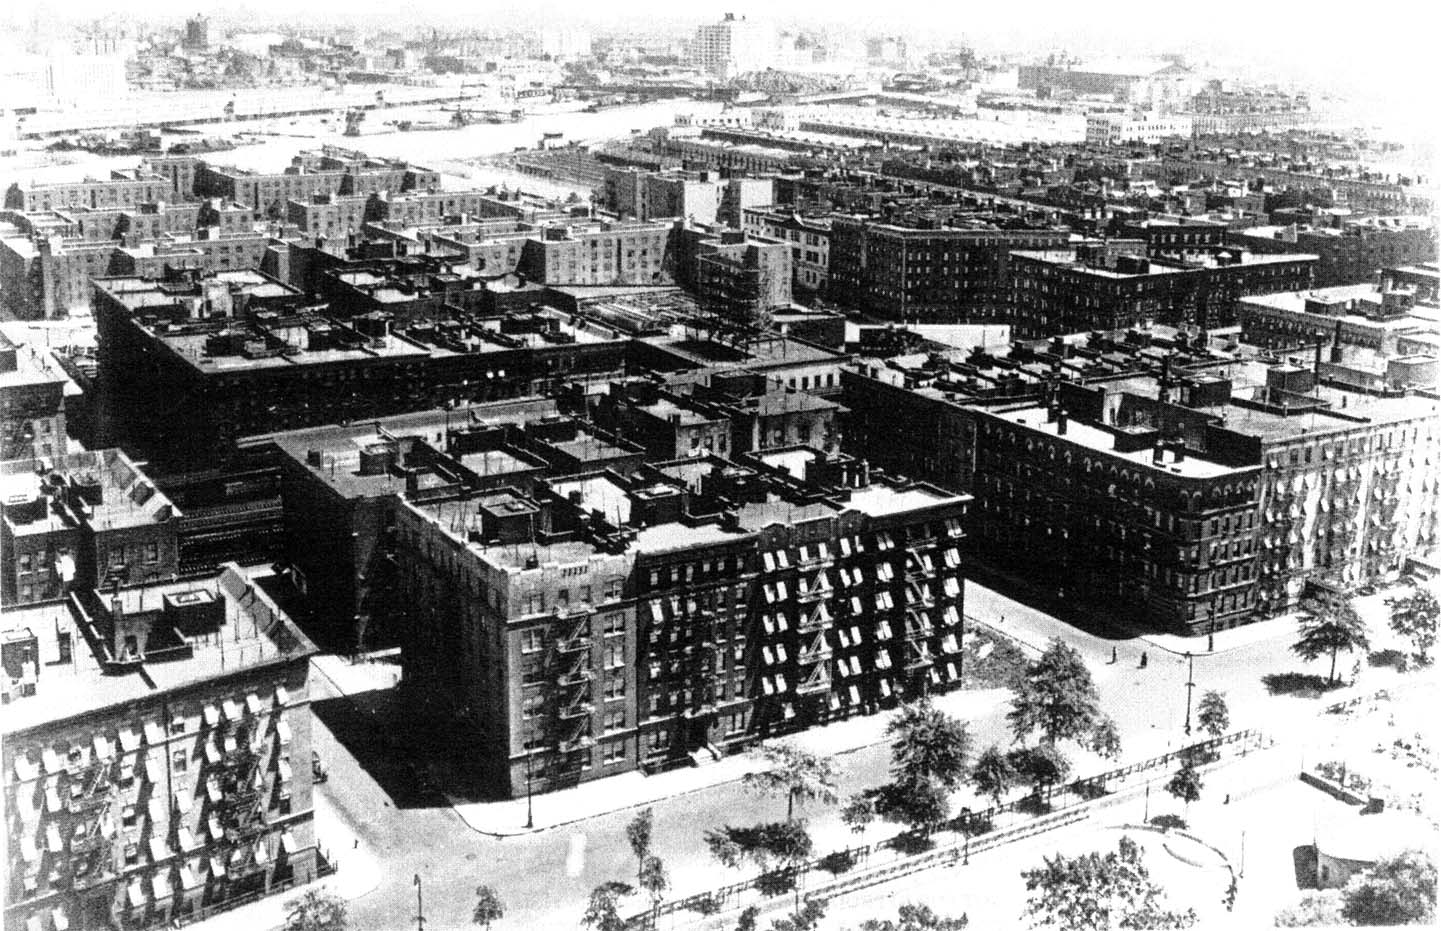 Harlem Aerial, 1930s. Photo: Unknown